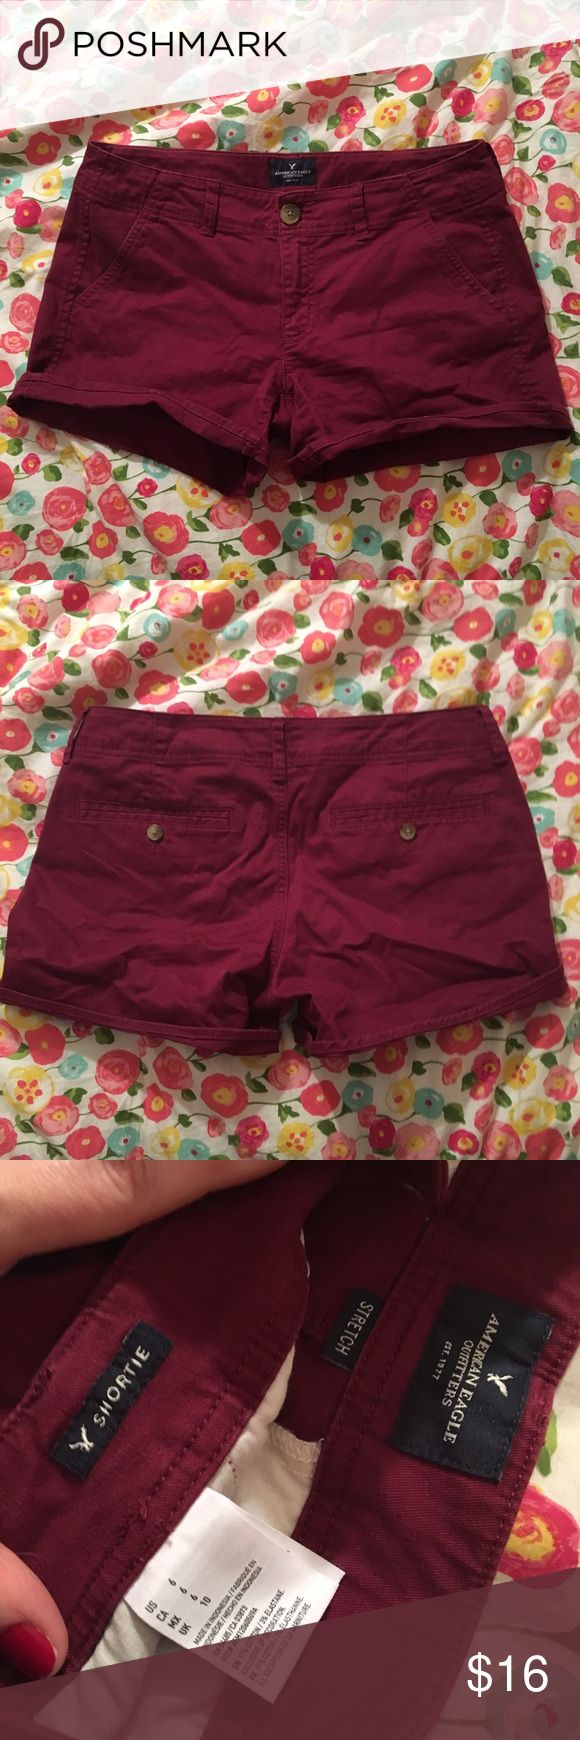 American Eagle Stretch Shortie Maroon Shorts 6 In excellent condition!! Stretch size 6. Legs can be rolled up or down. Style is the Shortie. American Eagle Outfitters Shorts